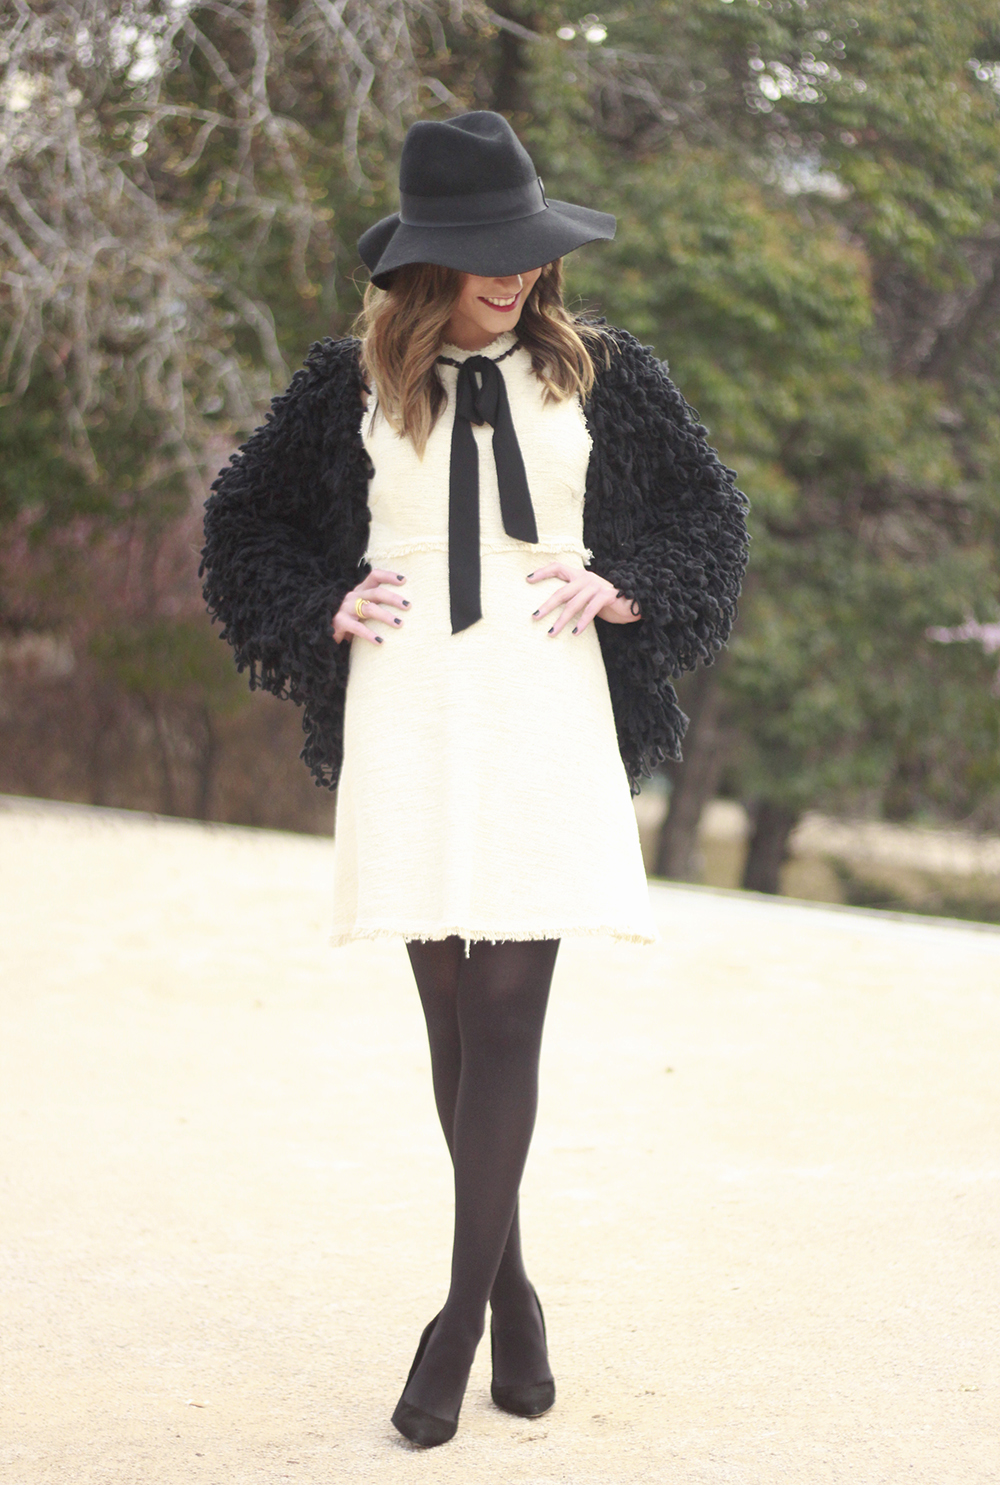 White tweed dress with bow black jacket hat outfit15